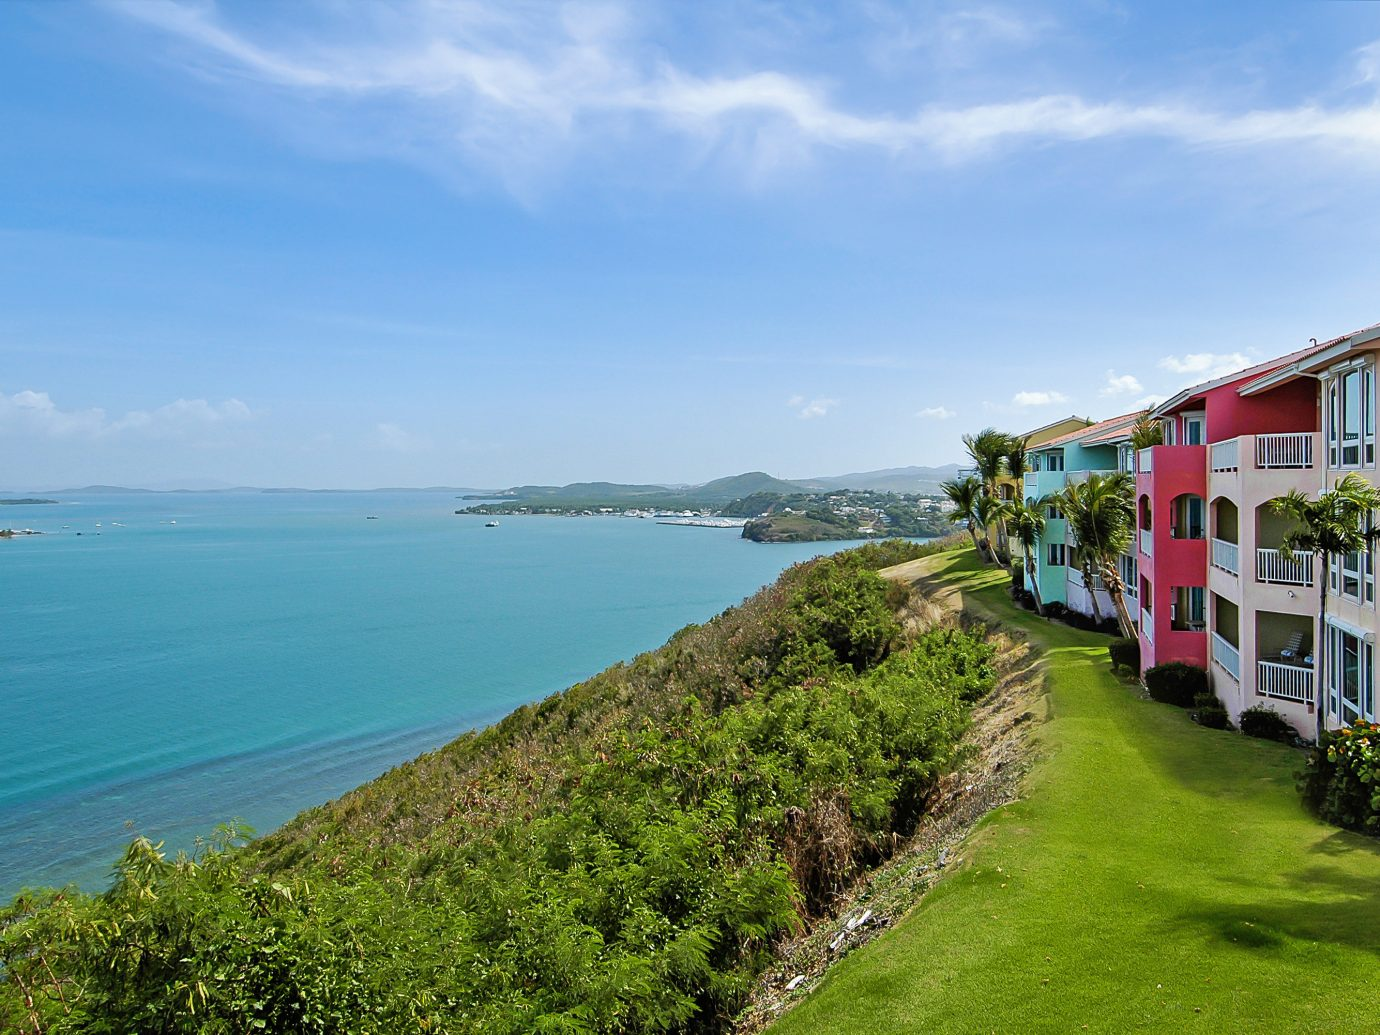 Hotels sky grass outdoor water Coast Sea landform geographical feature body of water shore Town vacation Beach Ocean bay Nature green tourism waterway cove cliff terrain Island cape grassy traveling lush hillside